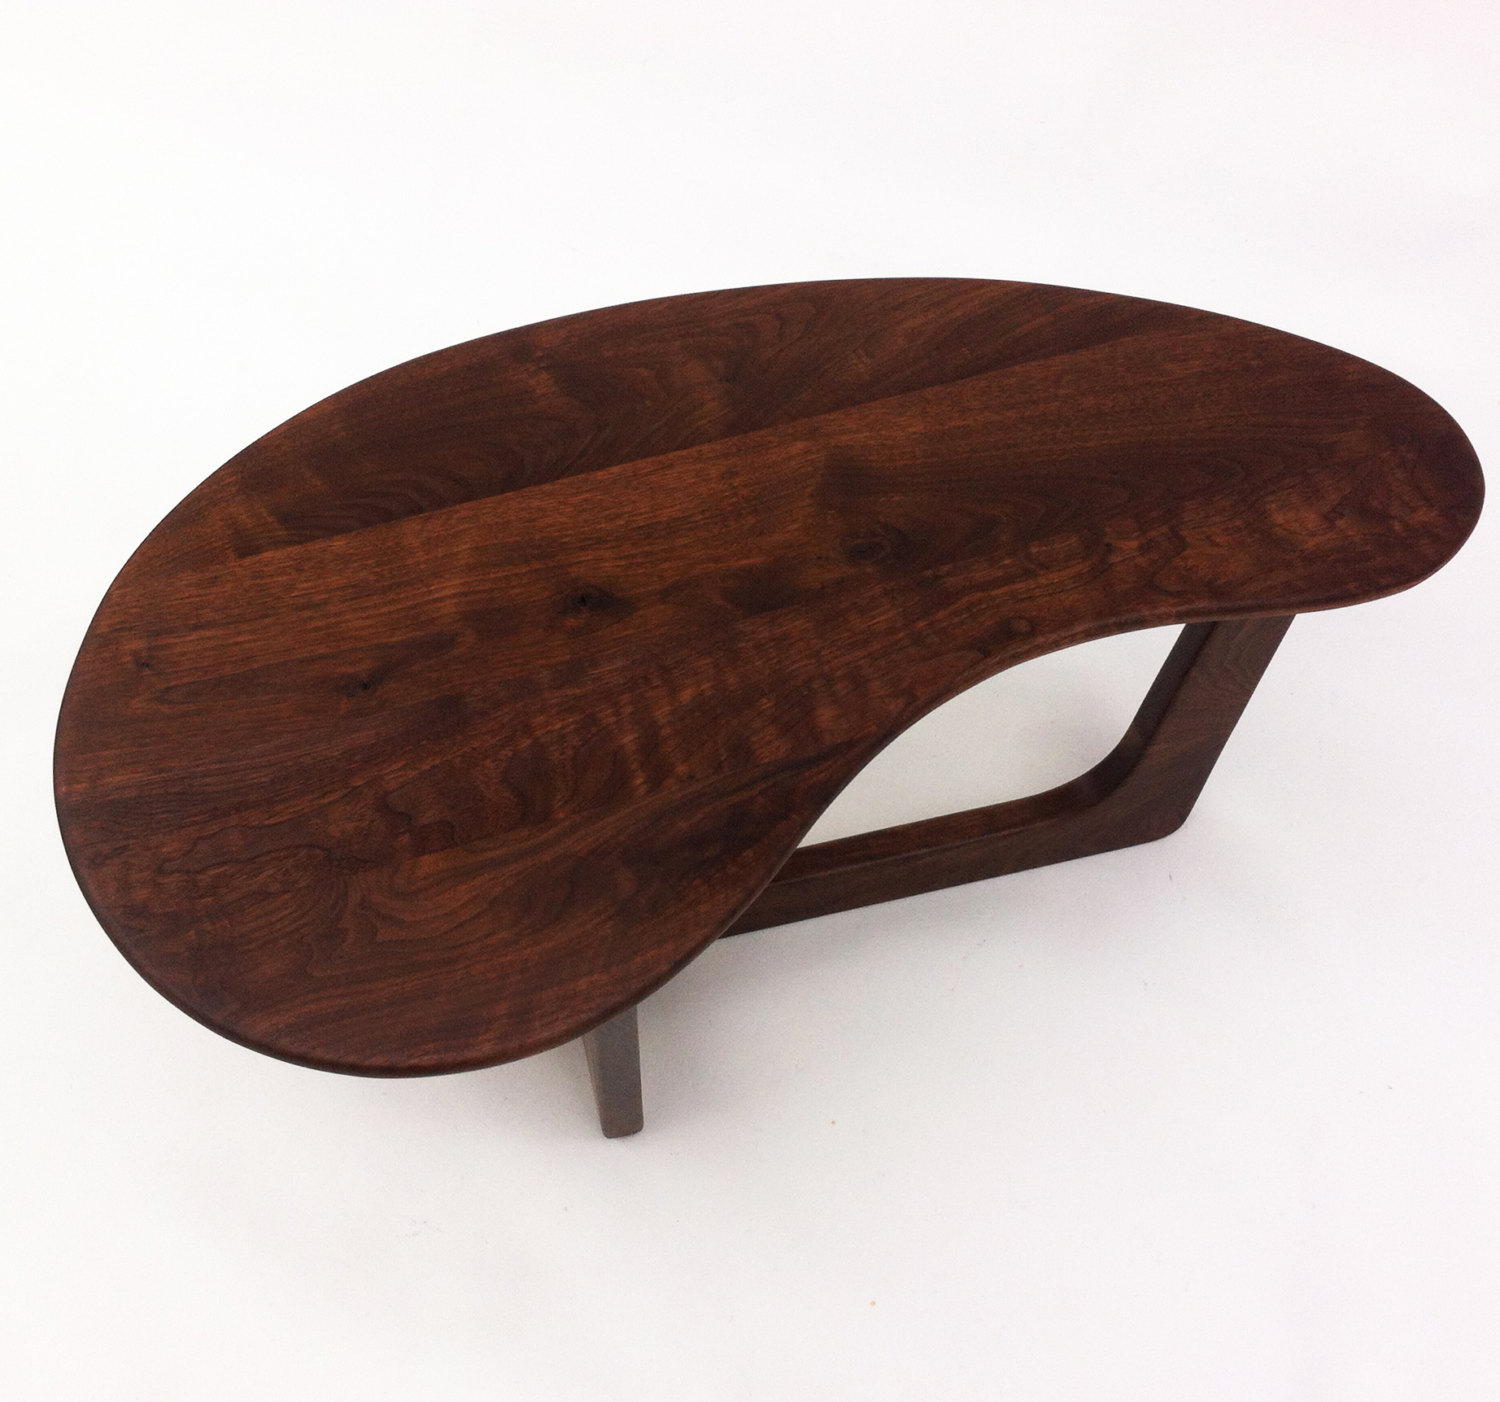 Contemporary Mid Century Modern Coffee Cocktail Table 43″ Kidney